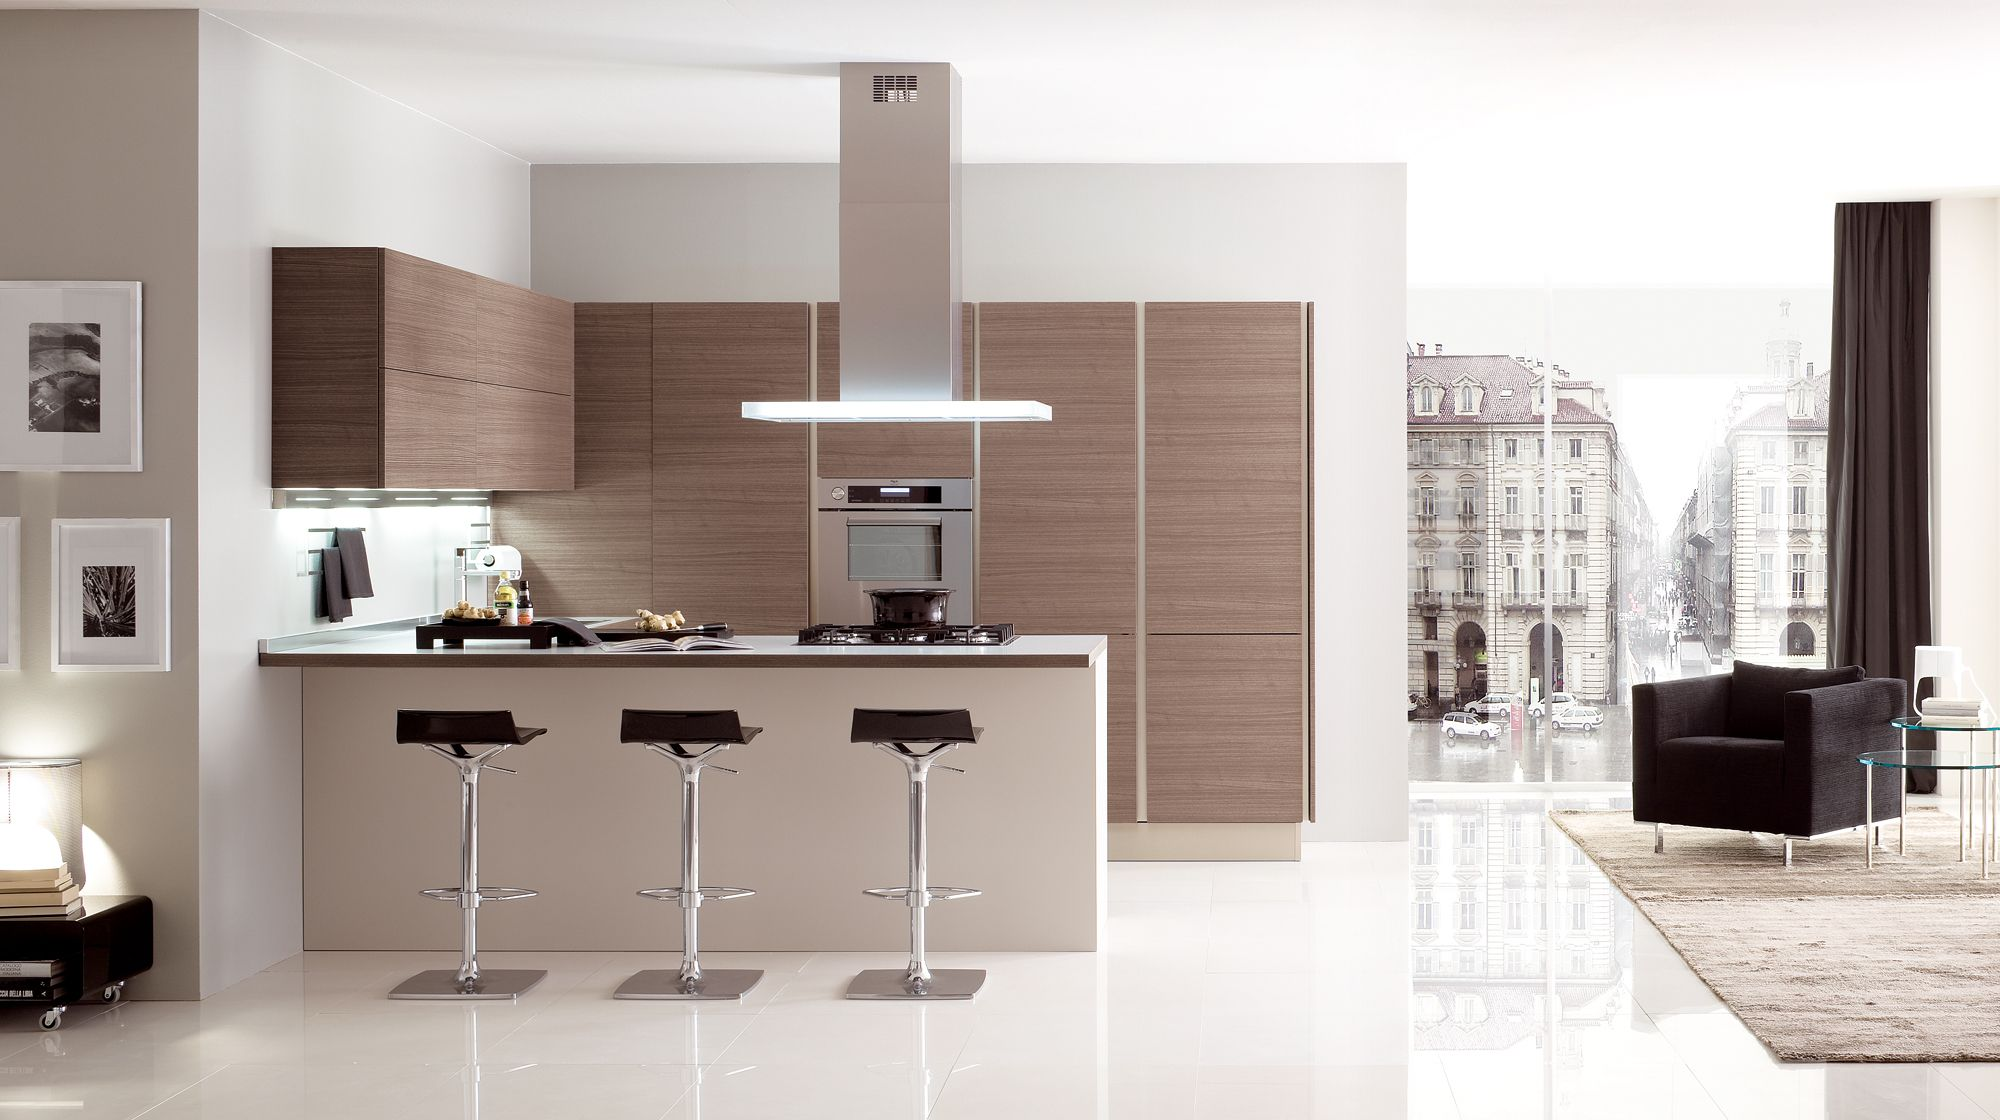 Veneta Cucine - Modern Kitchen Cabinets - Oyster Decor | Kitchen ...